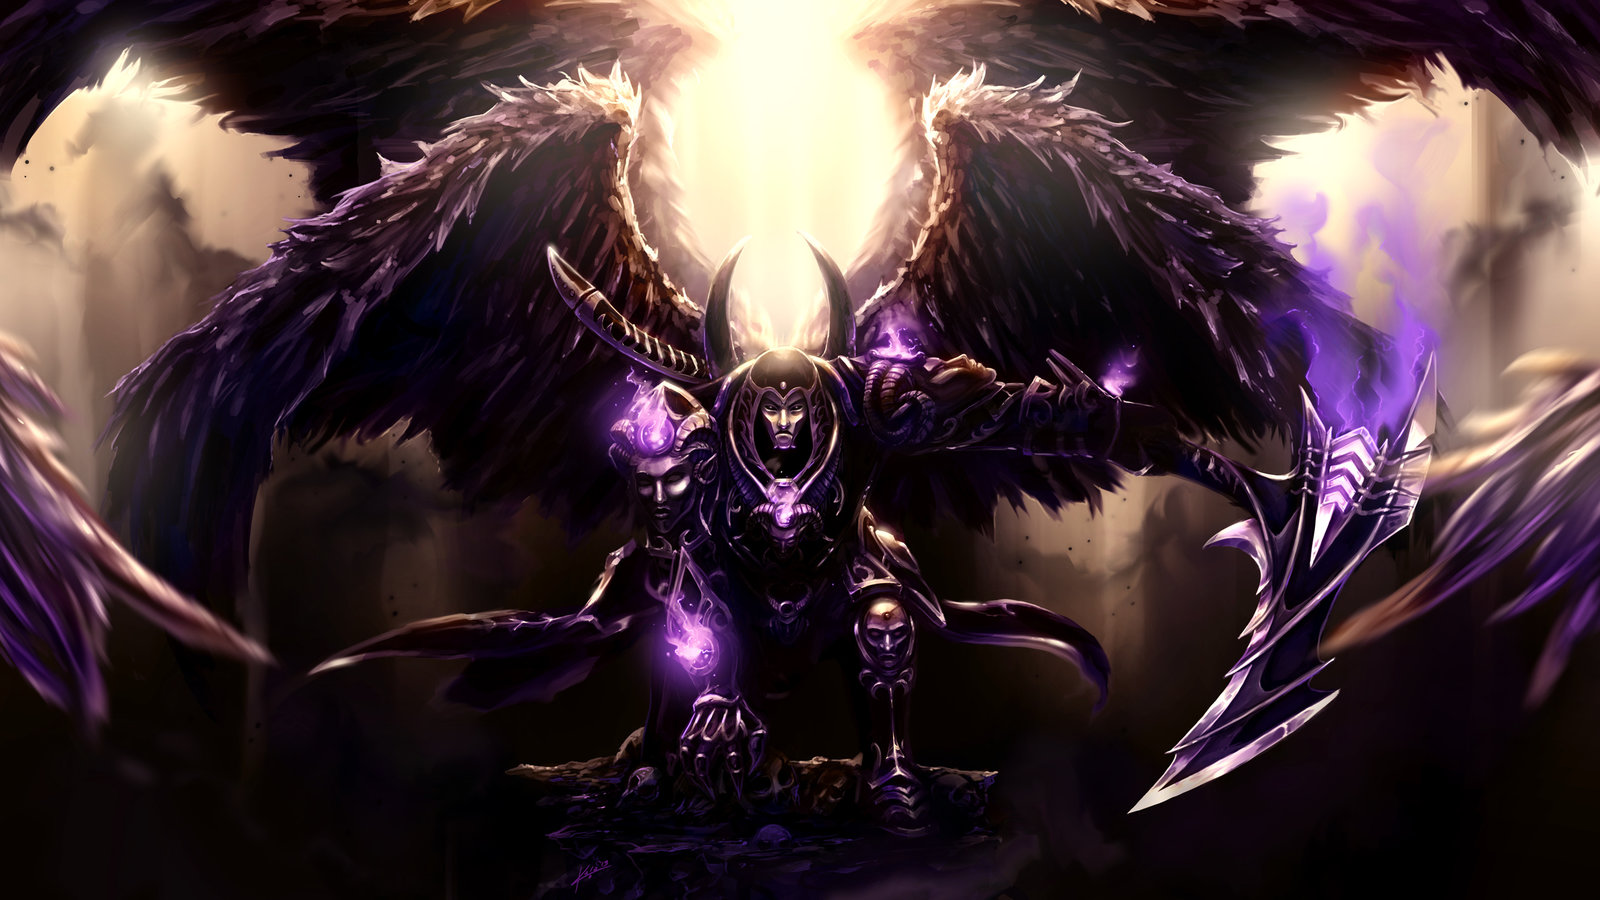 thanatos____smite_by_kala_a-d6n44ze.jpg